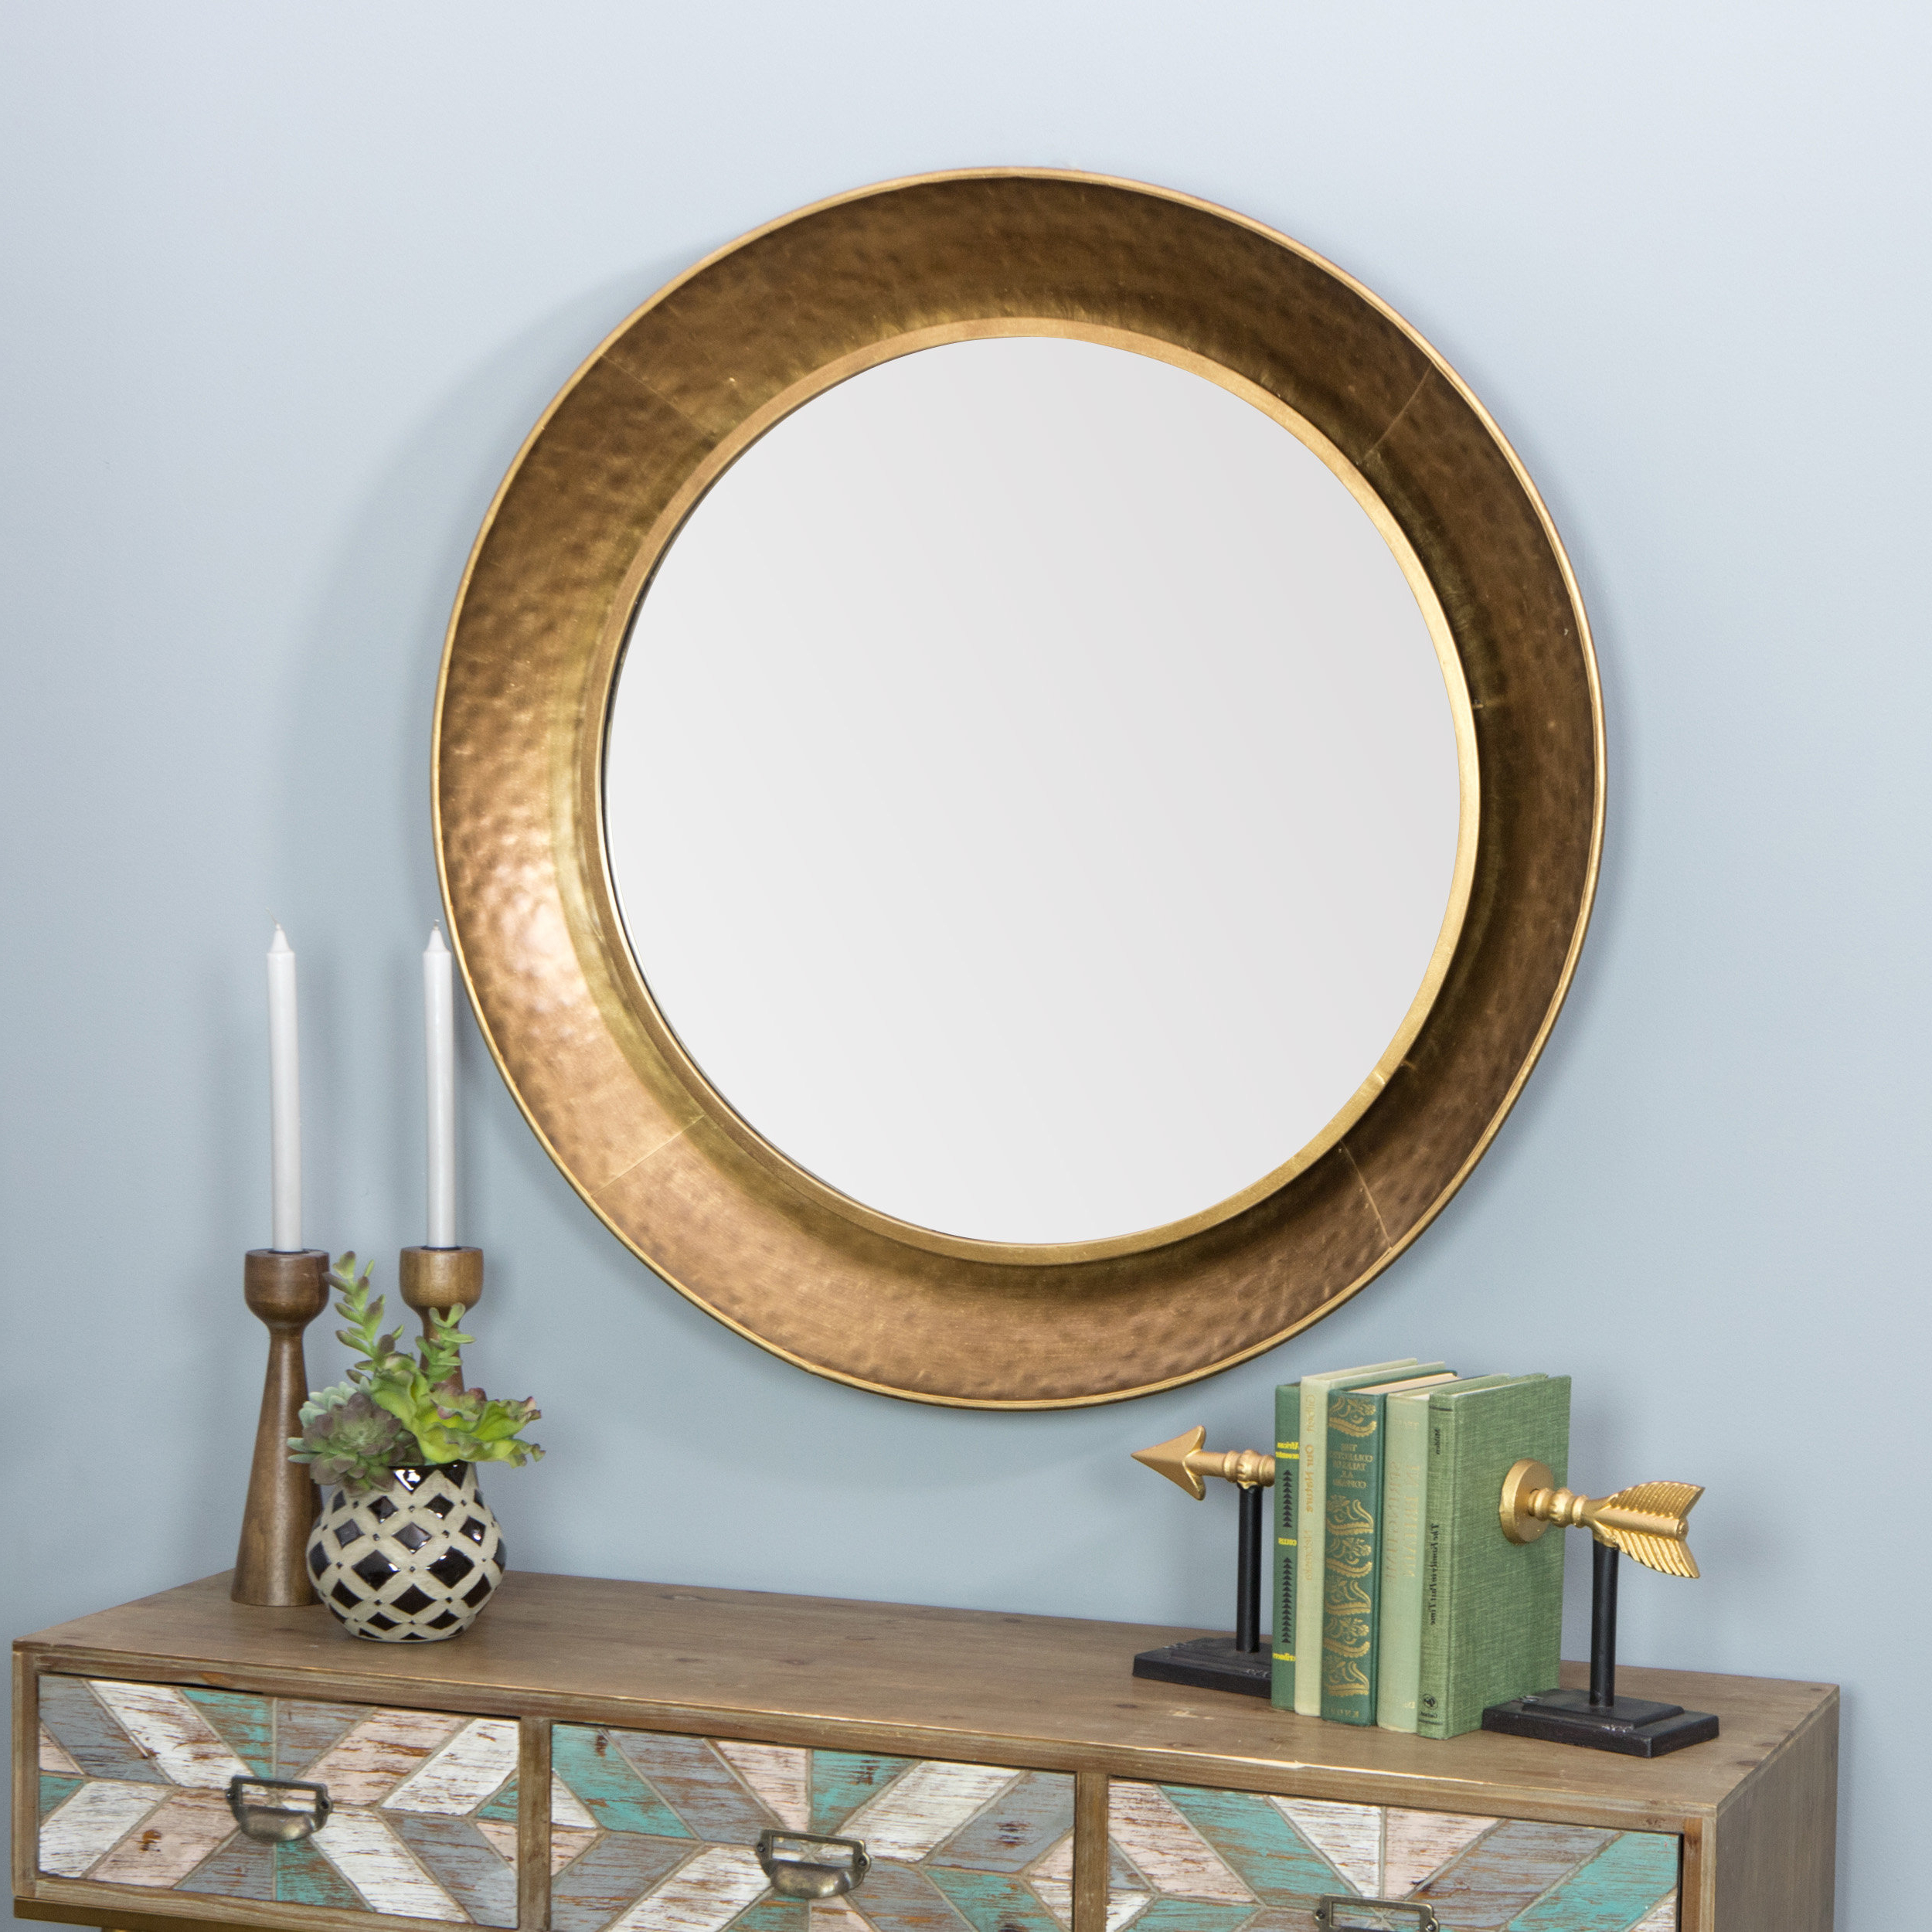 Preferred Webber Wall Mirror With Concave Wall Mirrors (View 11 of 20)